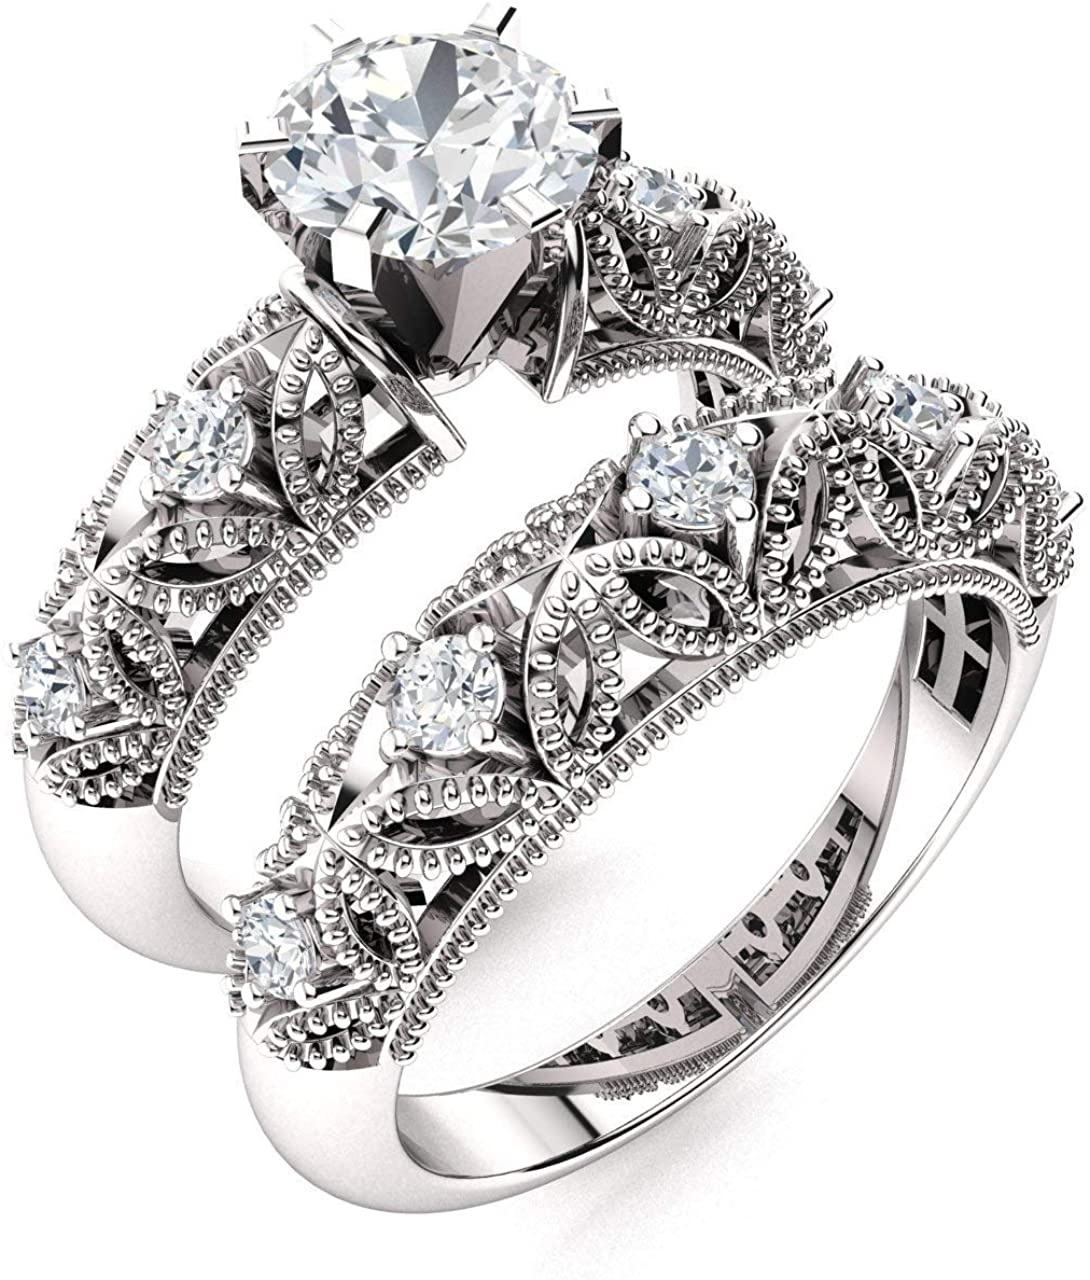 Diamondere Natural and GIA Certified Diamond Engagement Ring Set in 14K White Gold | 0.86 Carat Vintage Style Double Wedding Ring Sets, US Size 6.5